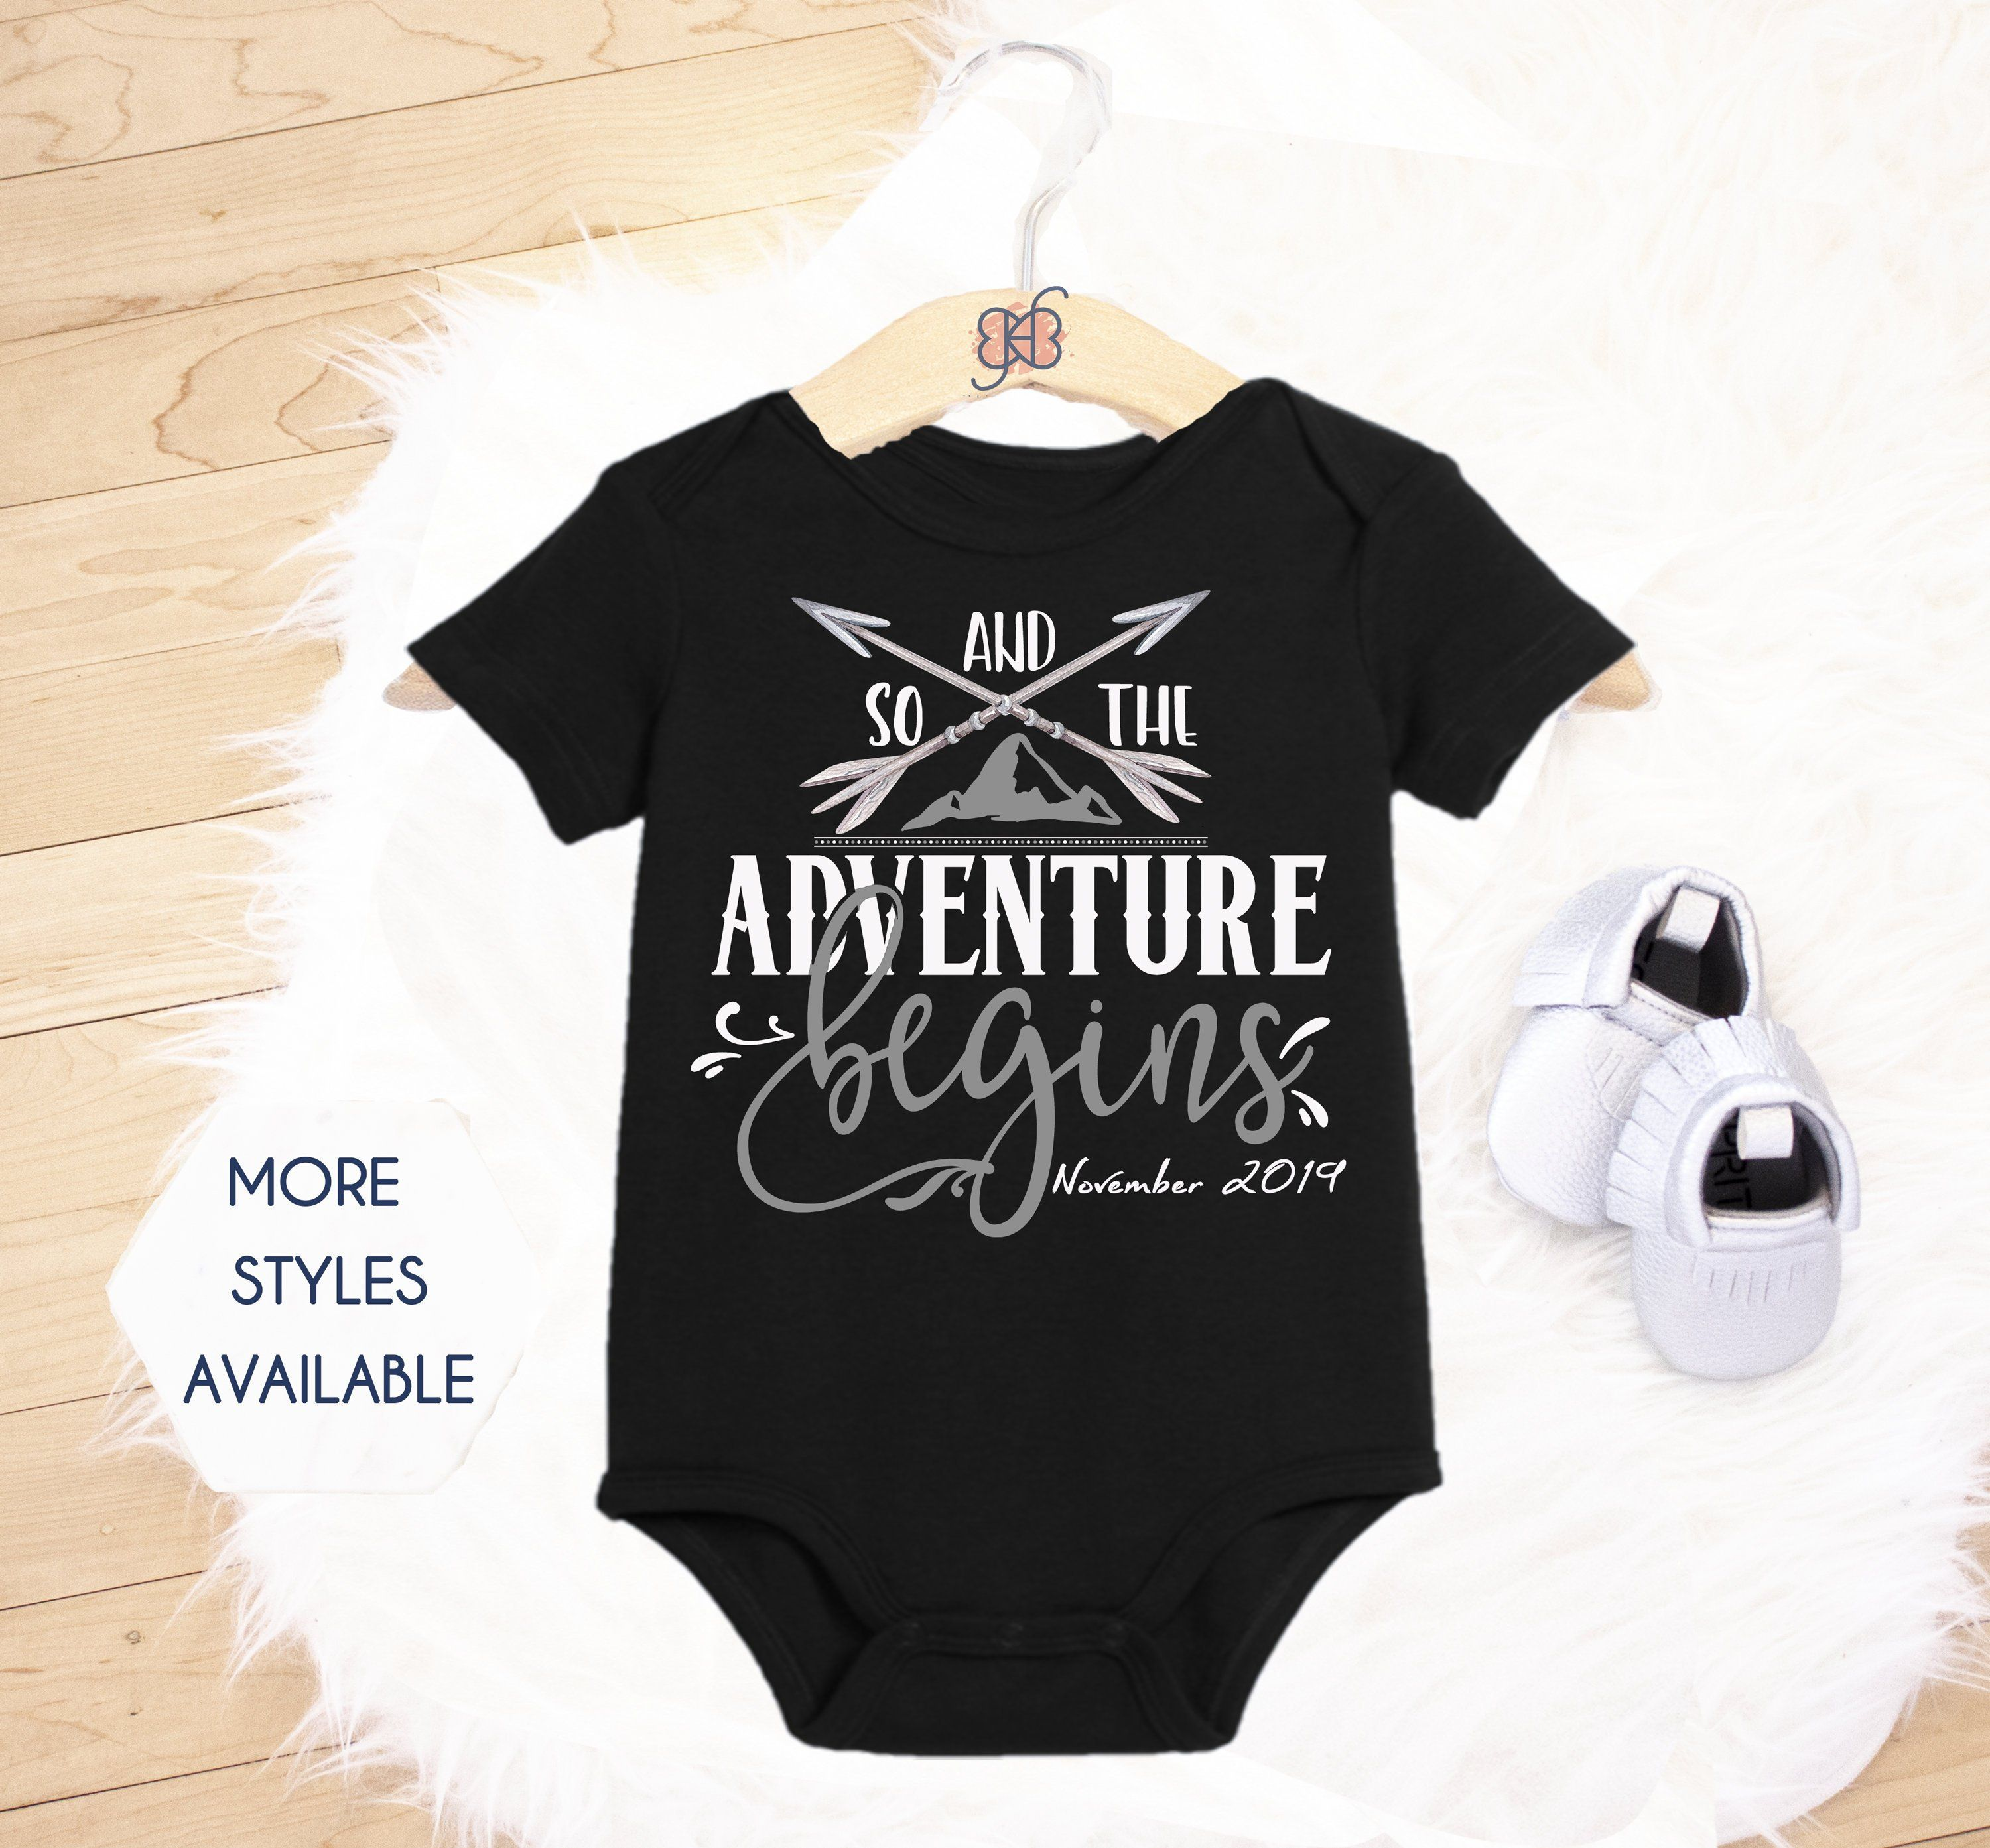 Family Baby Announcement Baby Reveal Announcement Photos We/'re Having A Baby ARRIVING Baby Announcement Pregnancy Announcement Onesie\u00ae